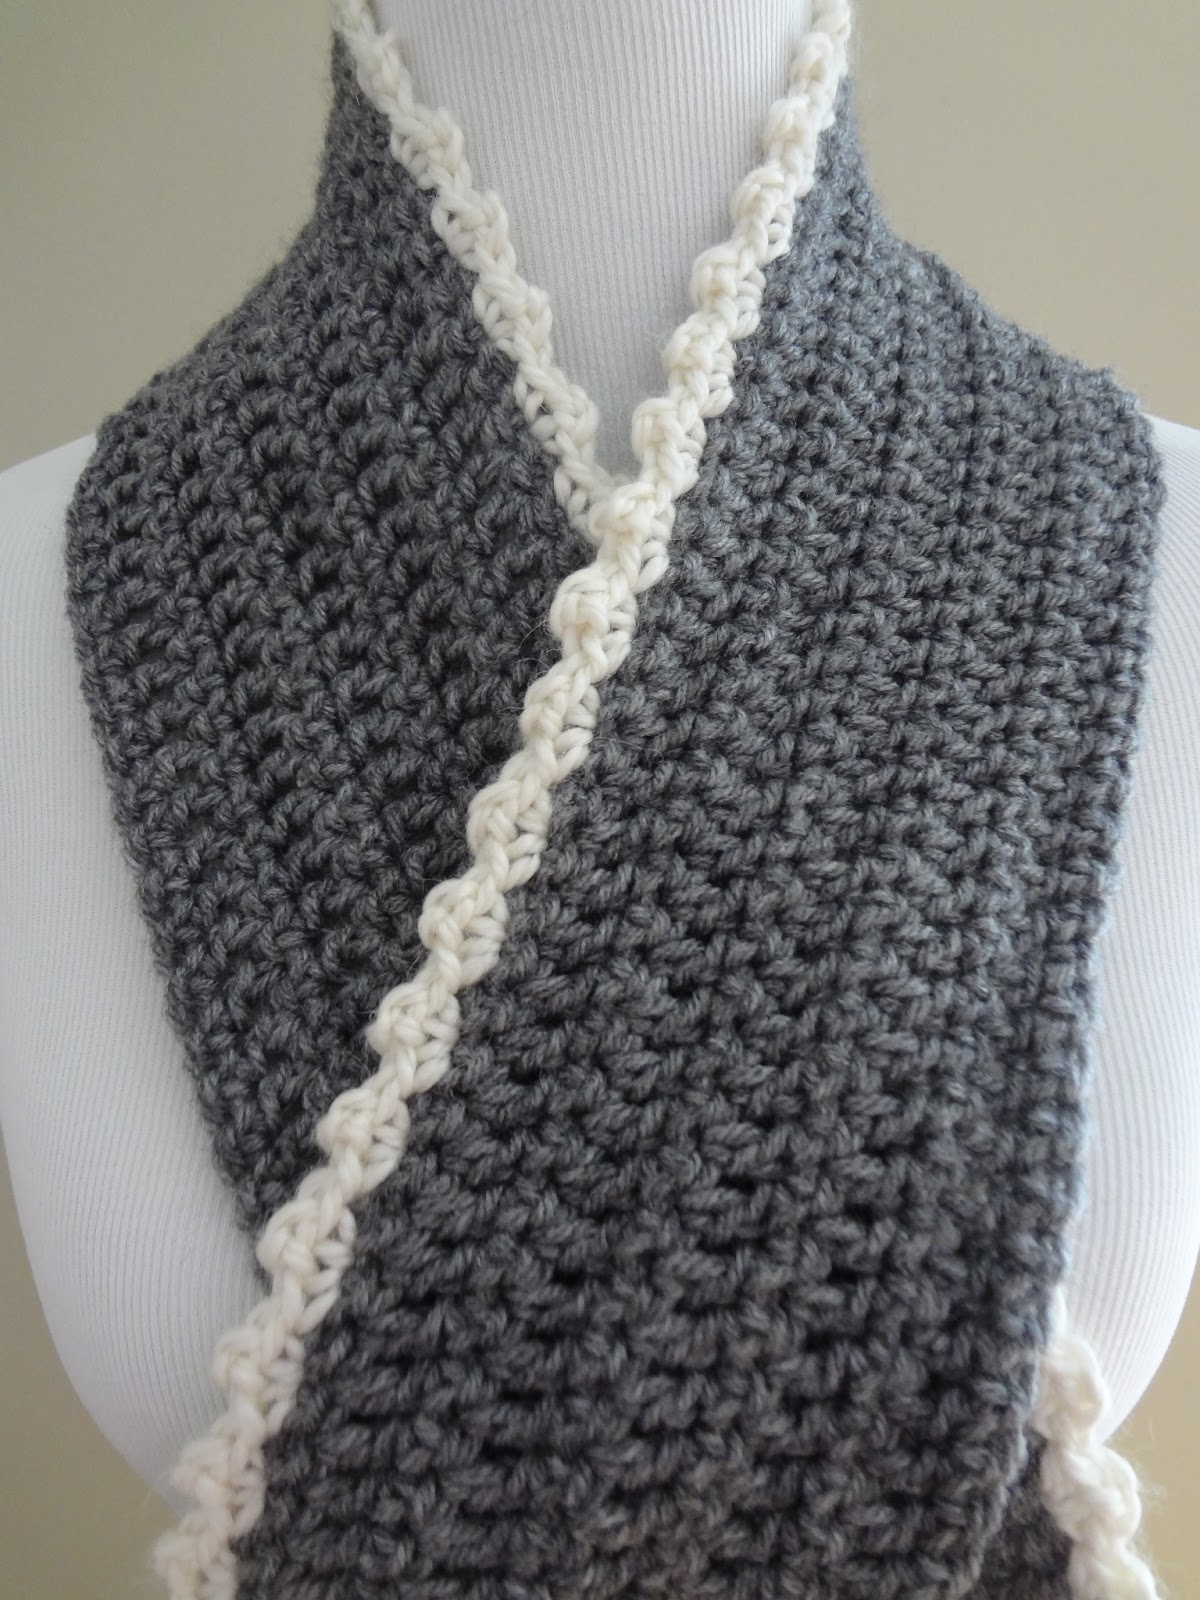 Crochet A Scarf : for scarf body make a chain that is the desired length of your scarf ...